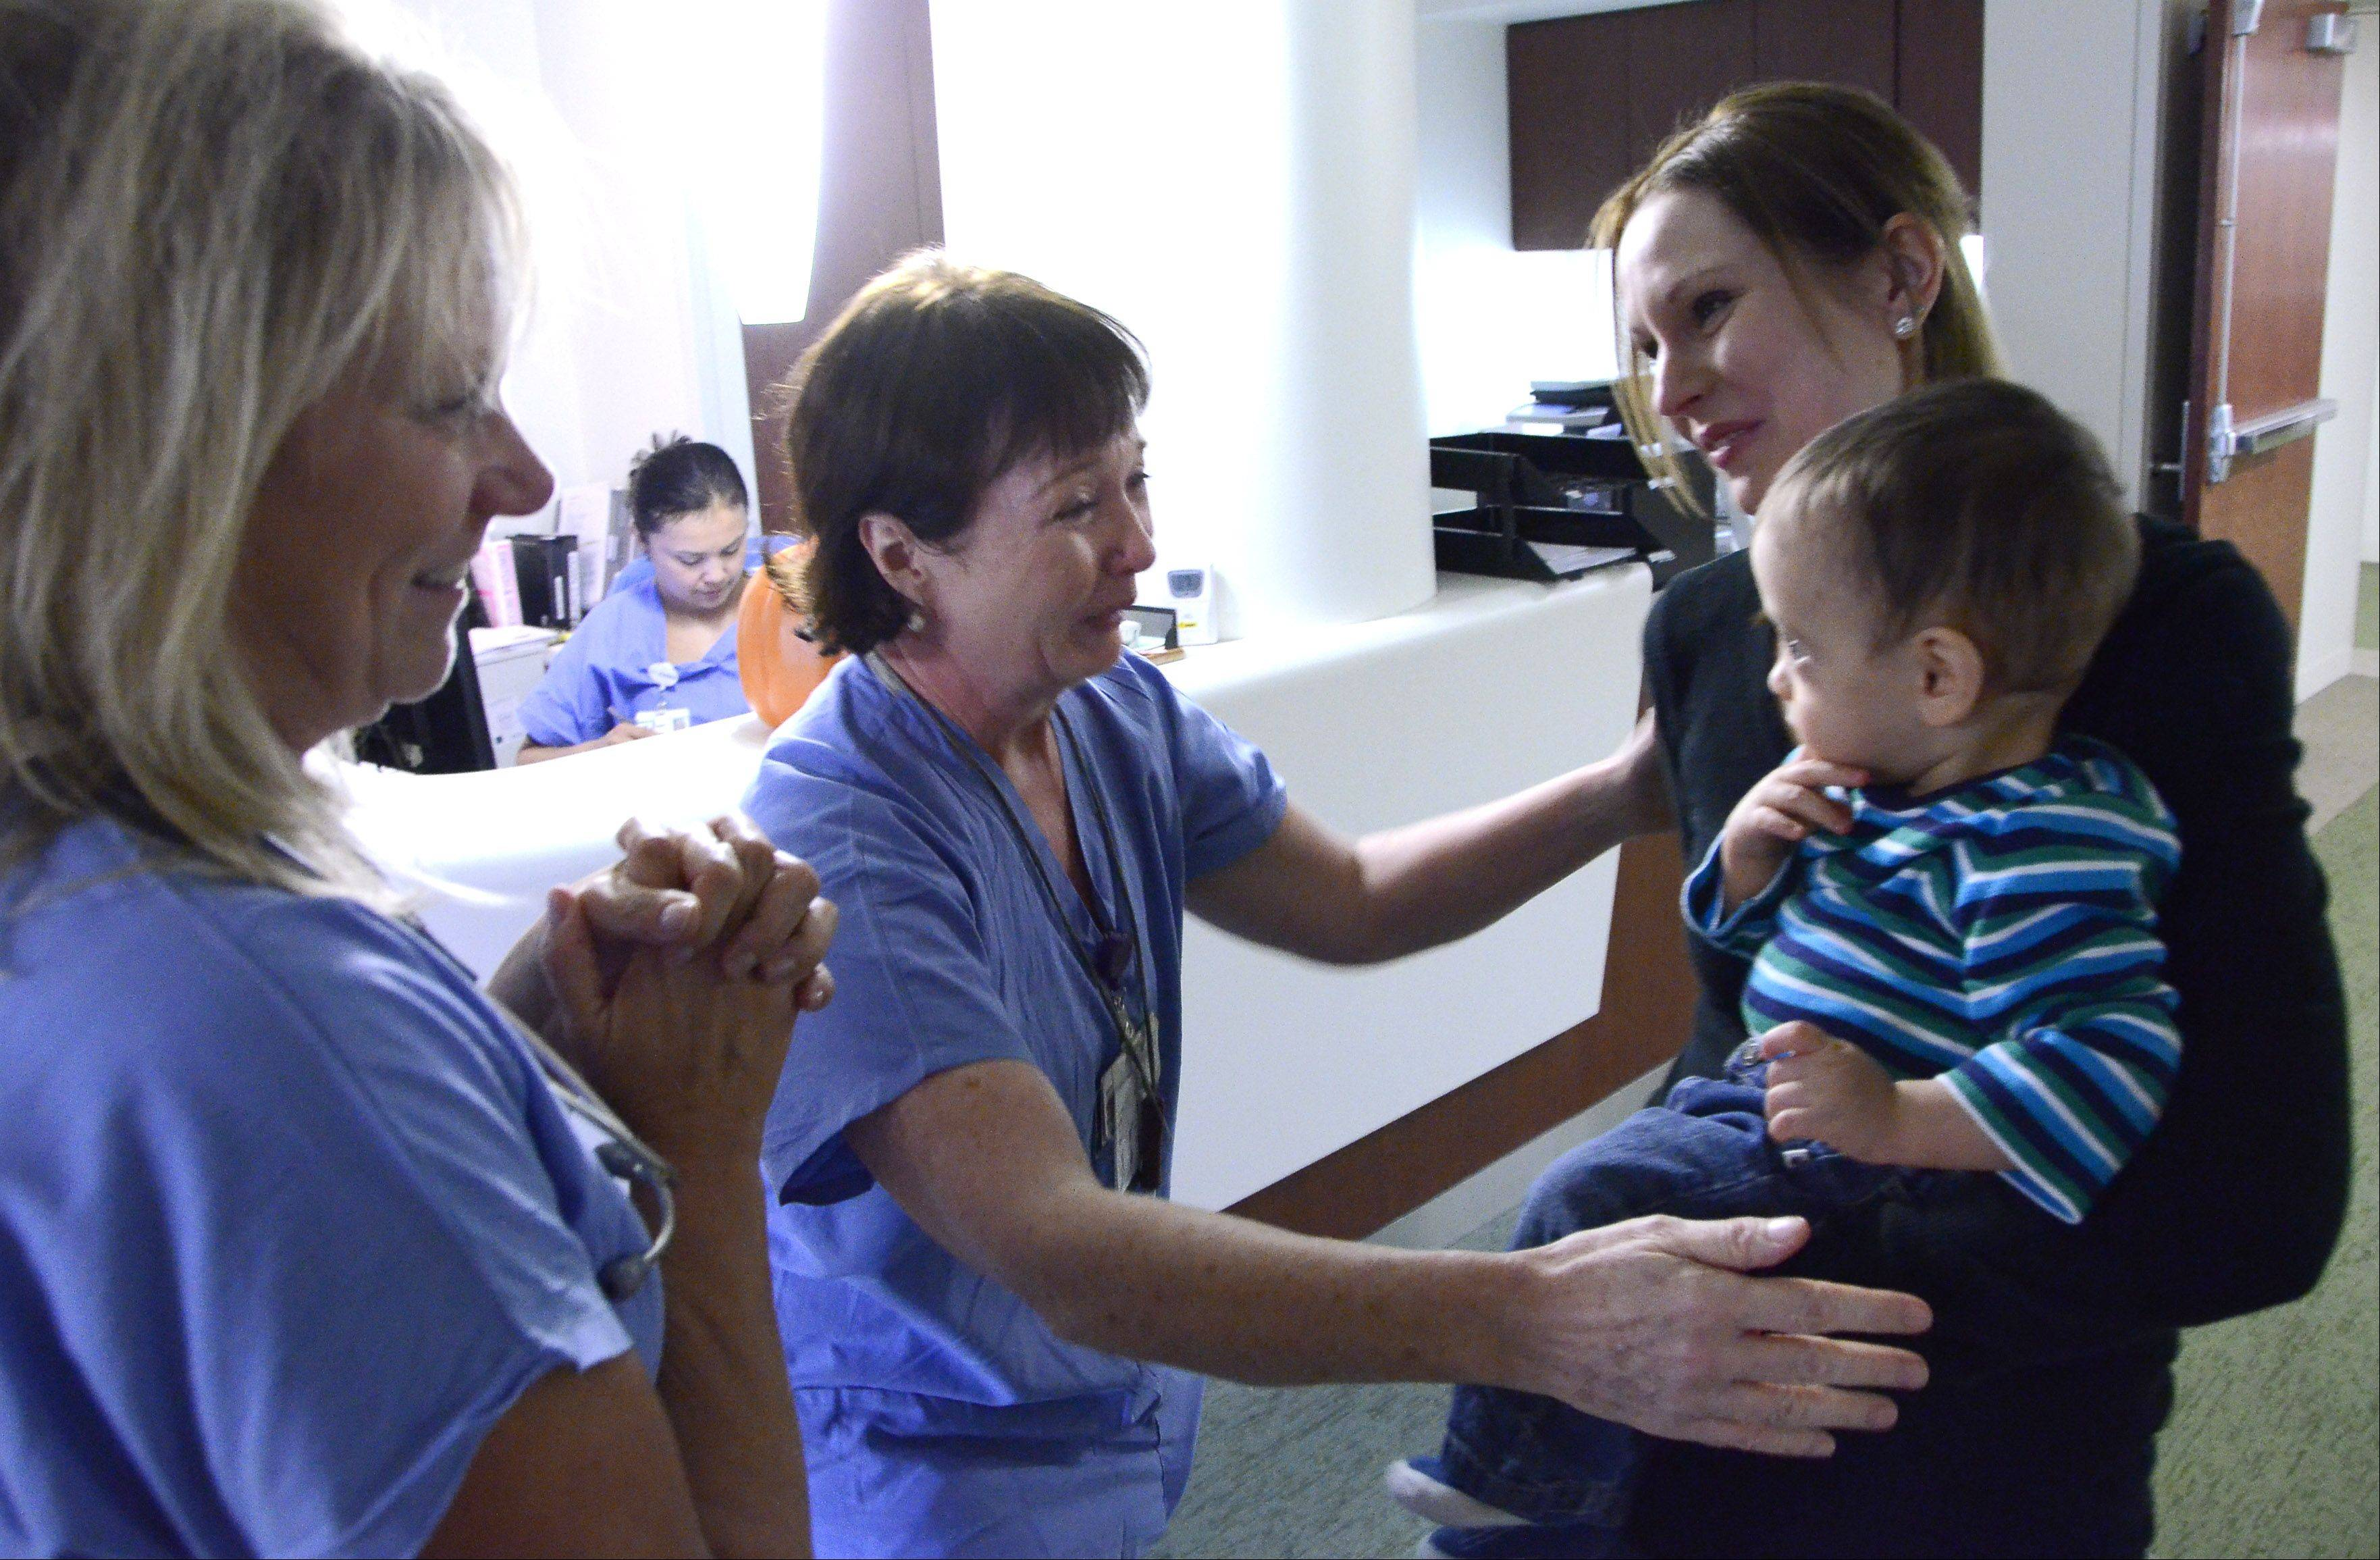 Nurses Murlene Mastandrea, left, and Irene Wysocki were reunited Thursday with Brynn Kordik of West Dundee and her nearly year-old son, Zachary.